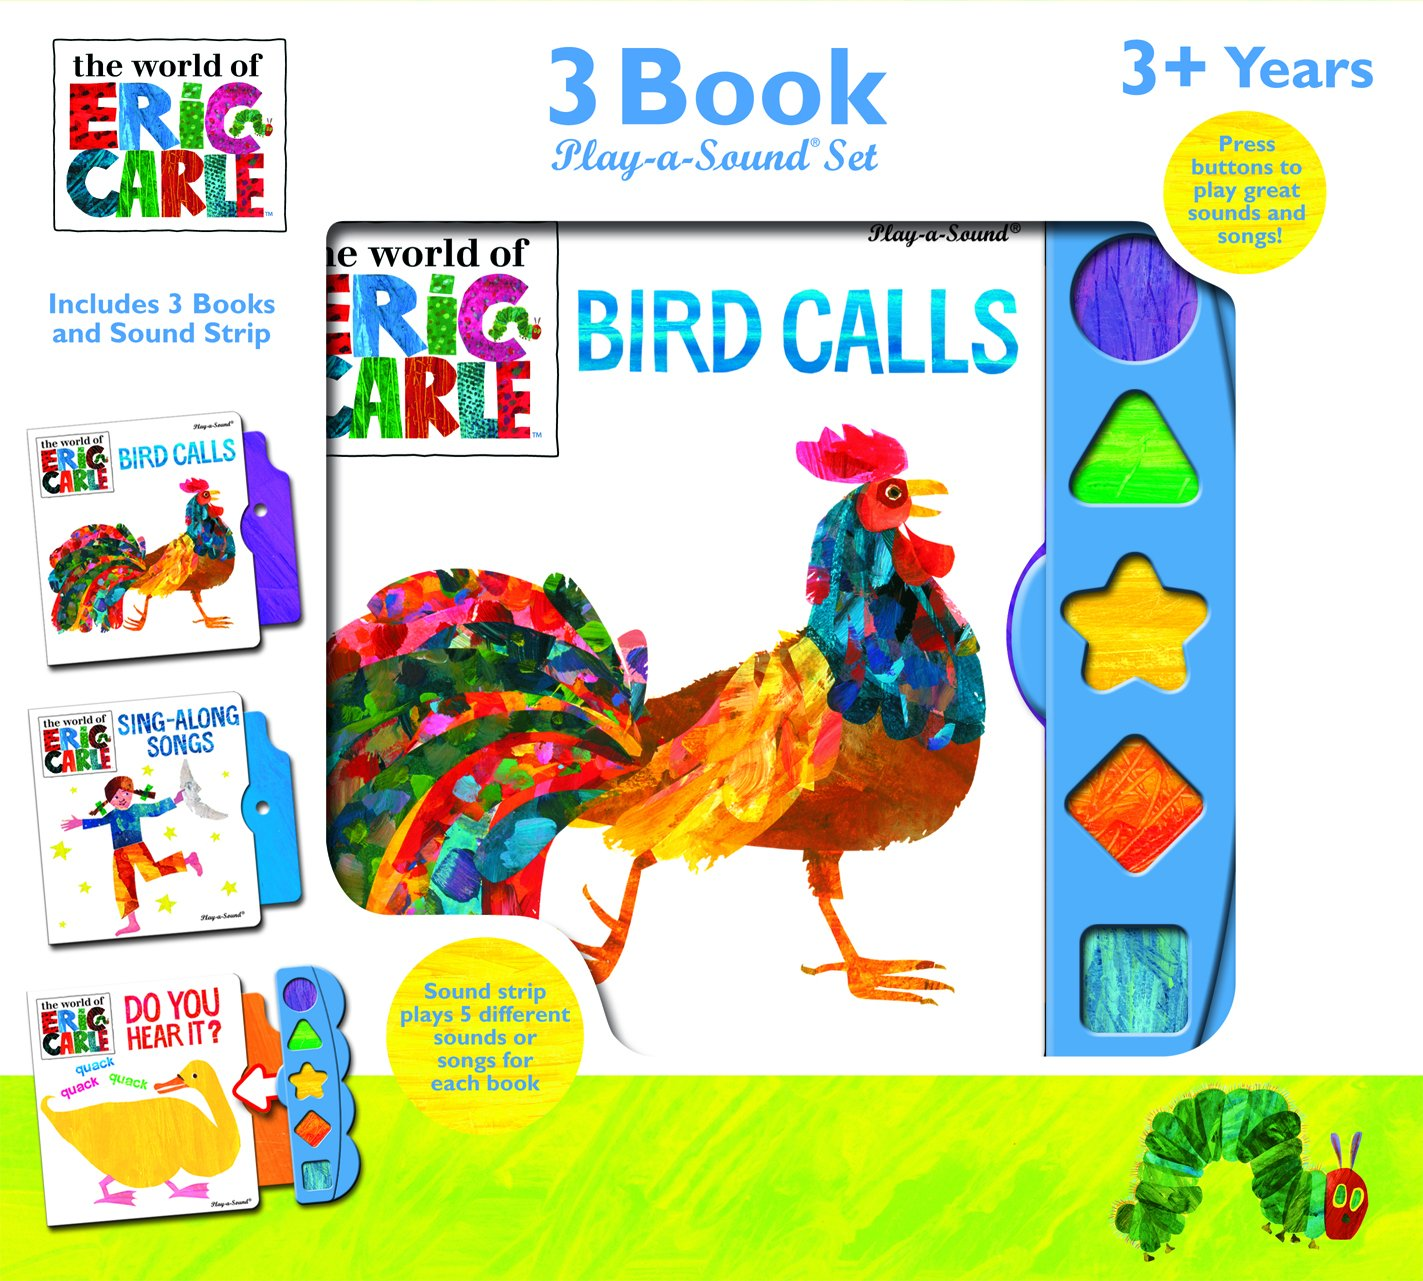 The World of Eric Carle 3 Book Play-a-Sound Set ebook